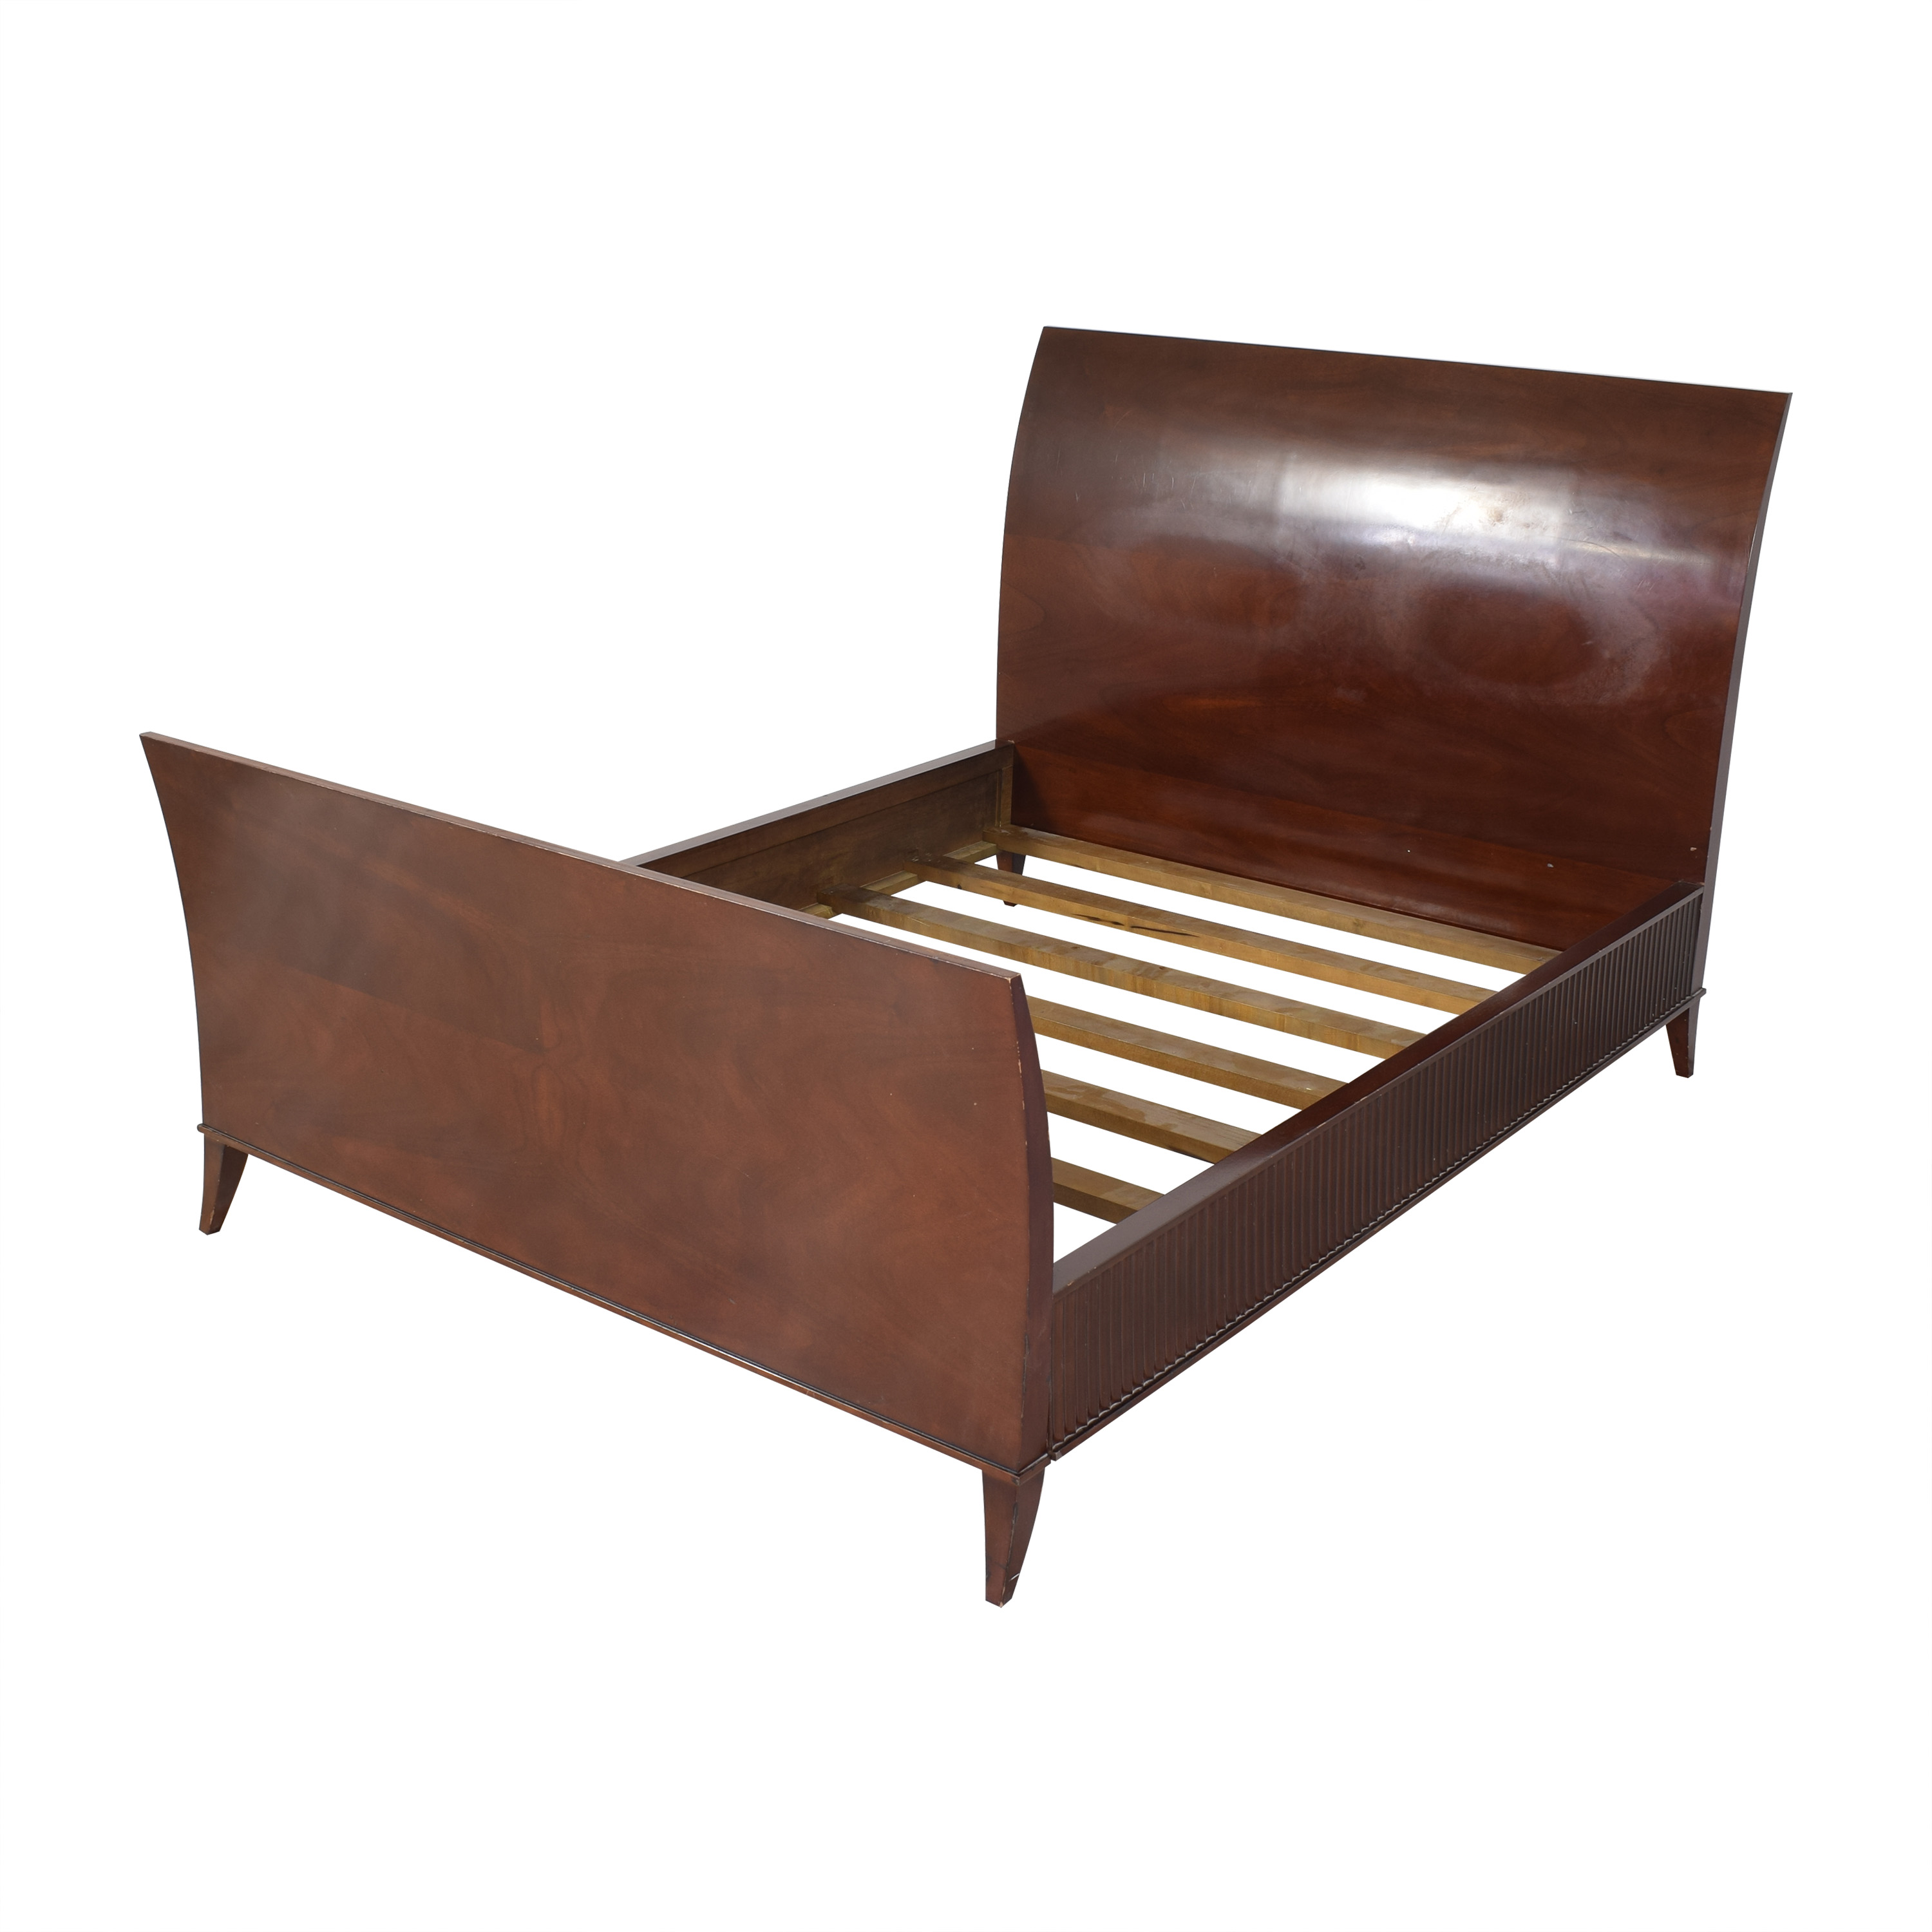 Decca Bolier for Decca Rosenau Collection Queen Sleigh Bed second hand